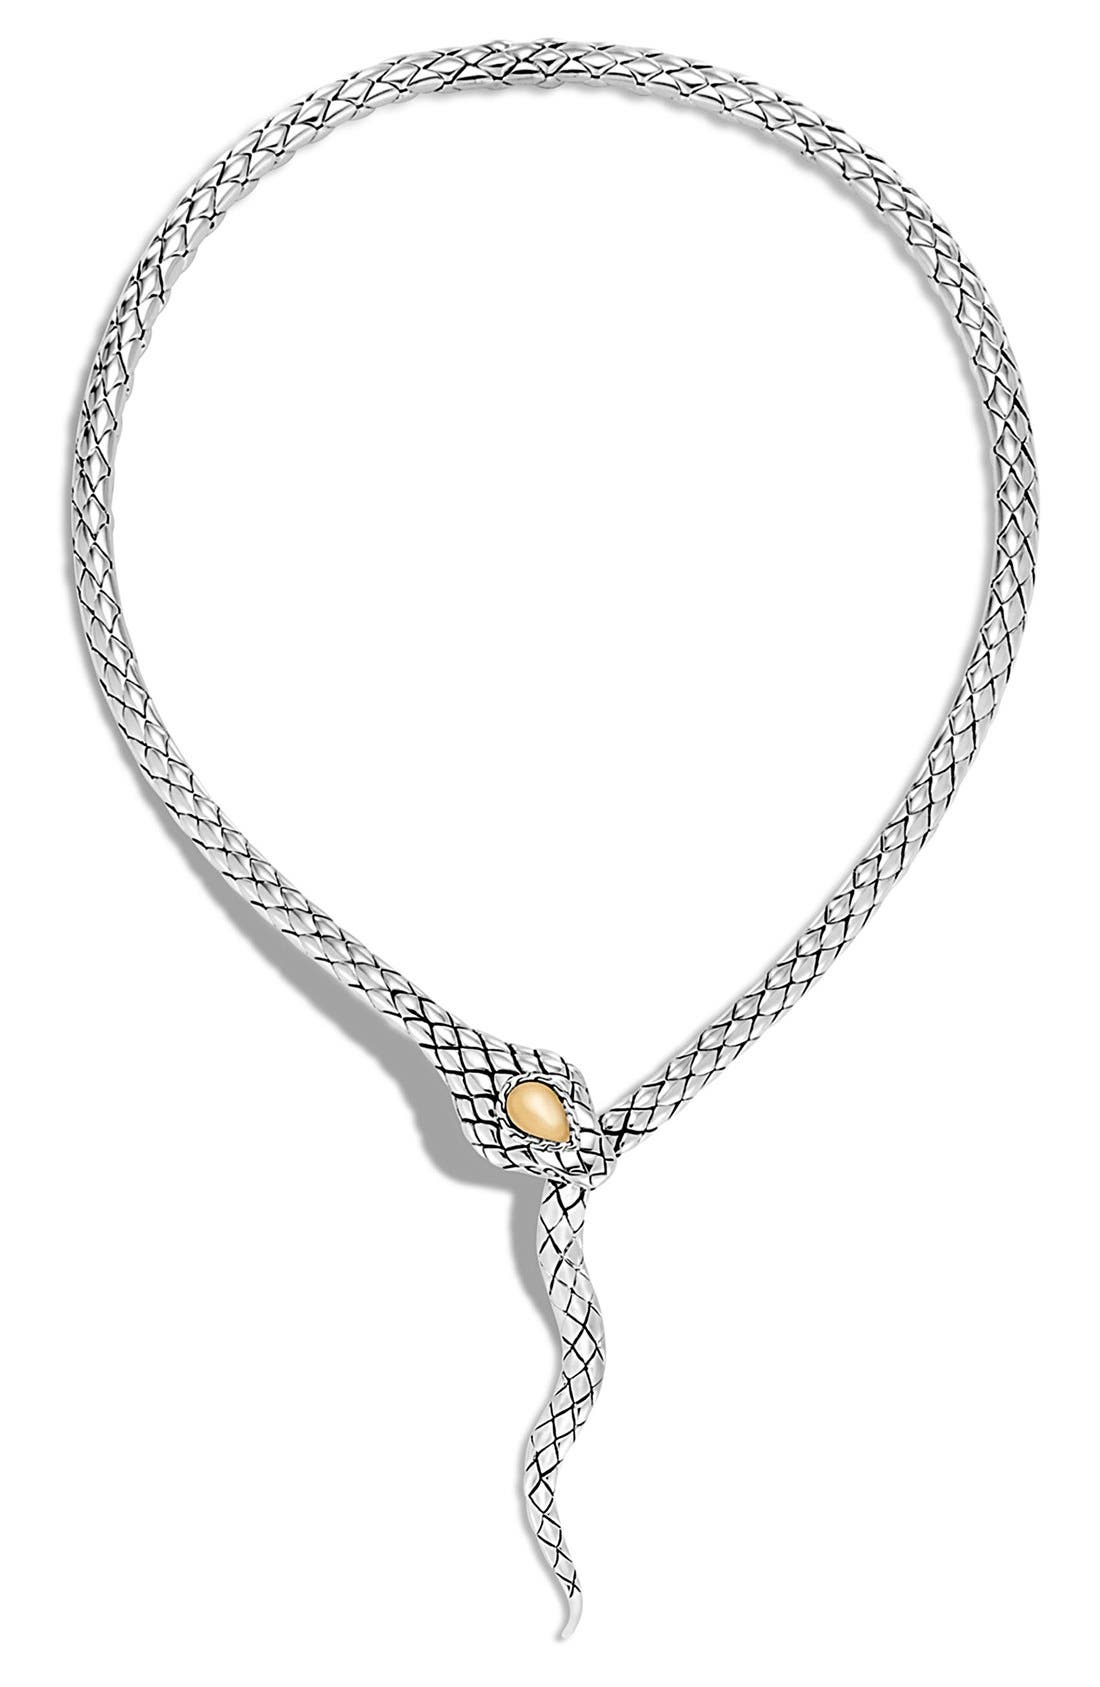 Legends Drop Necklace,                             Main thumbnail 1, color,                             SILVER/ GOLD